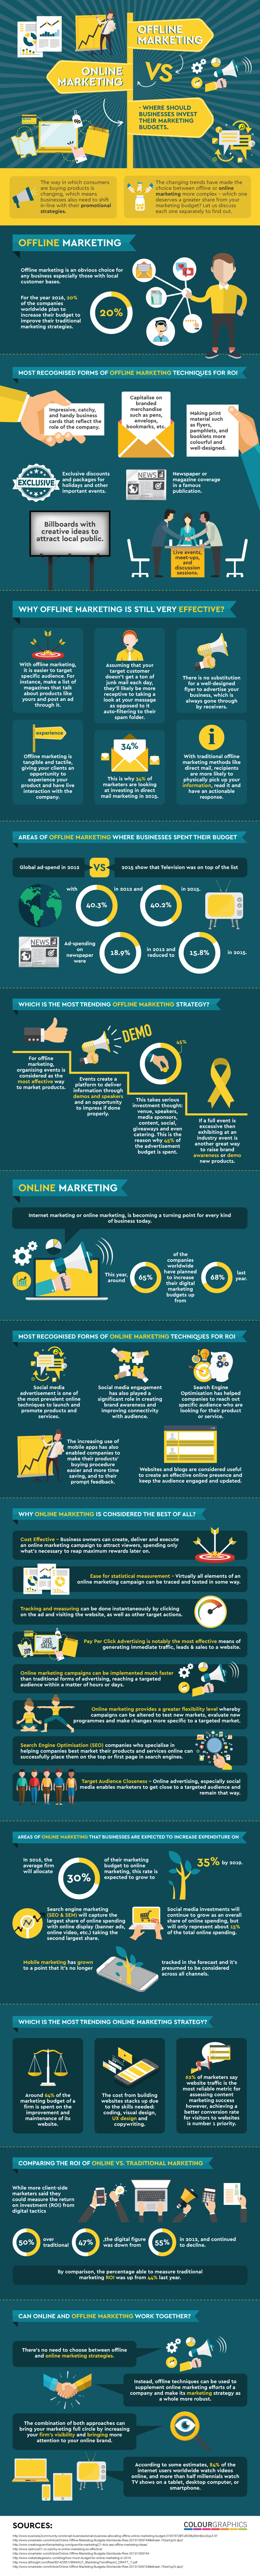 Where should businesses spend their marketing budgets